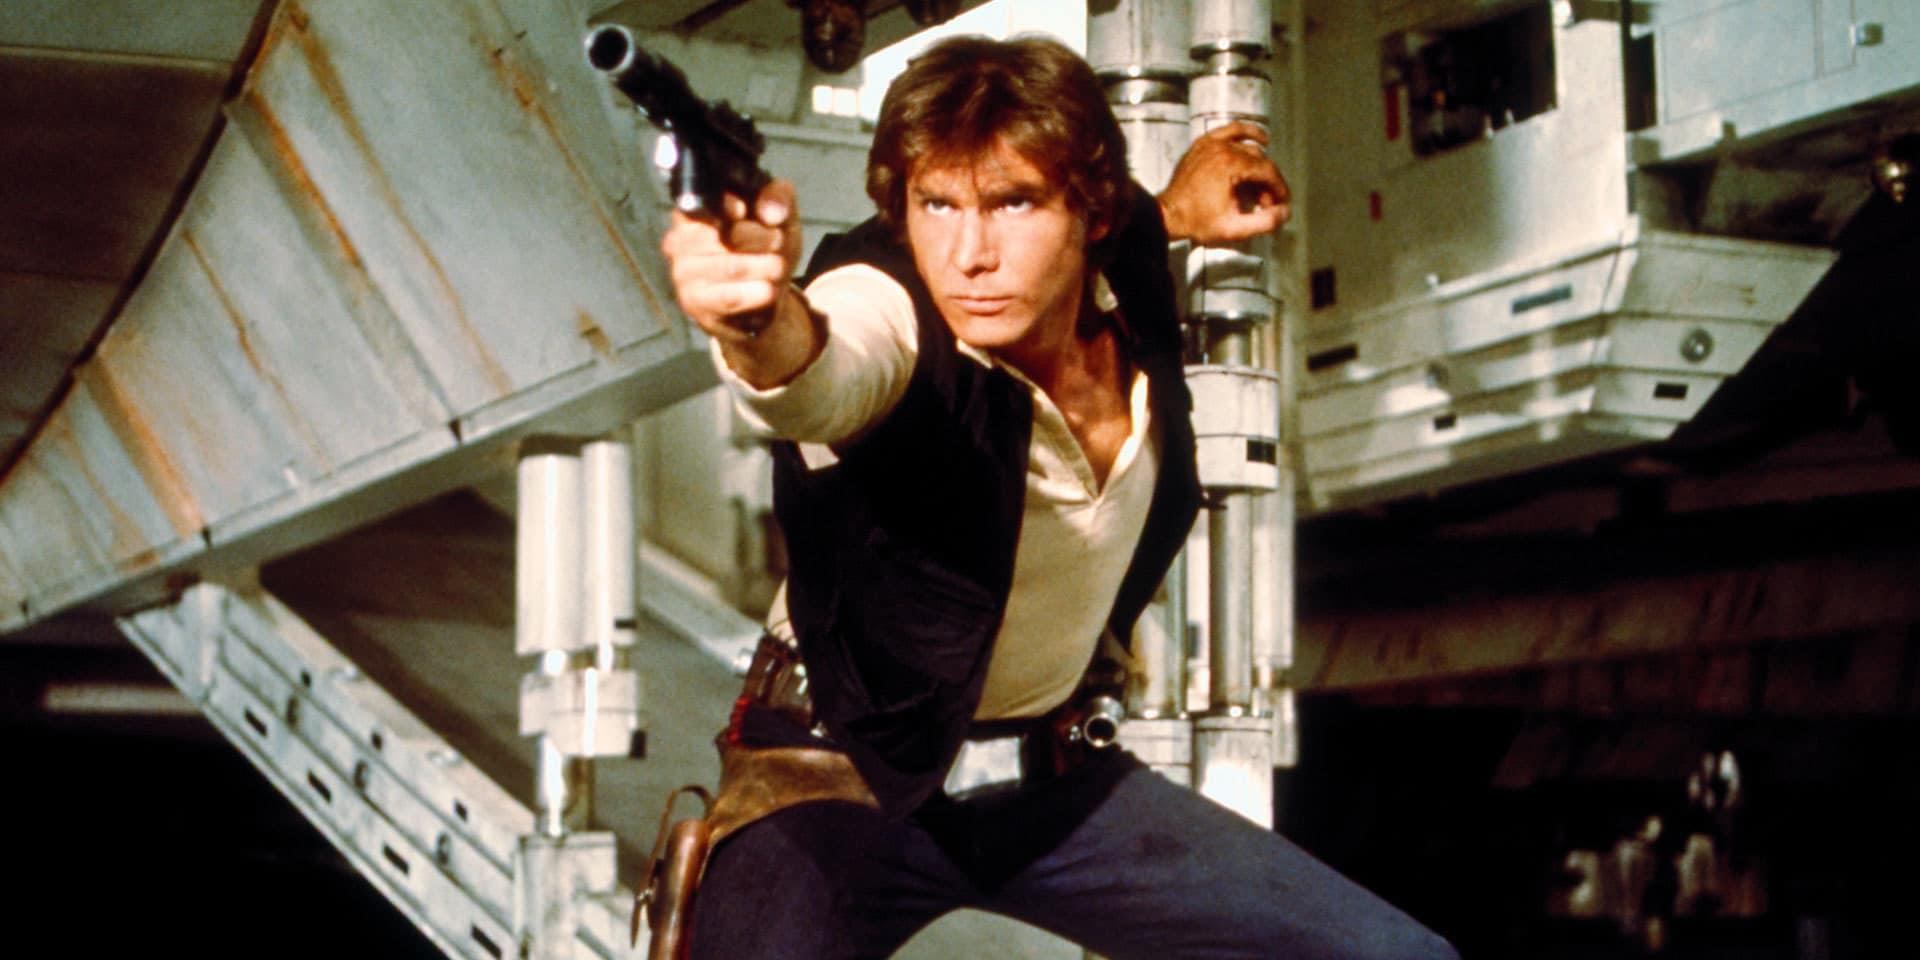 'Star Wars' icon Harrison Ford doesn't know what a Force Ghost is and doesn't much care